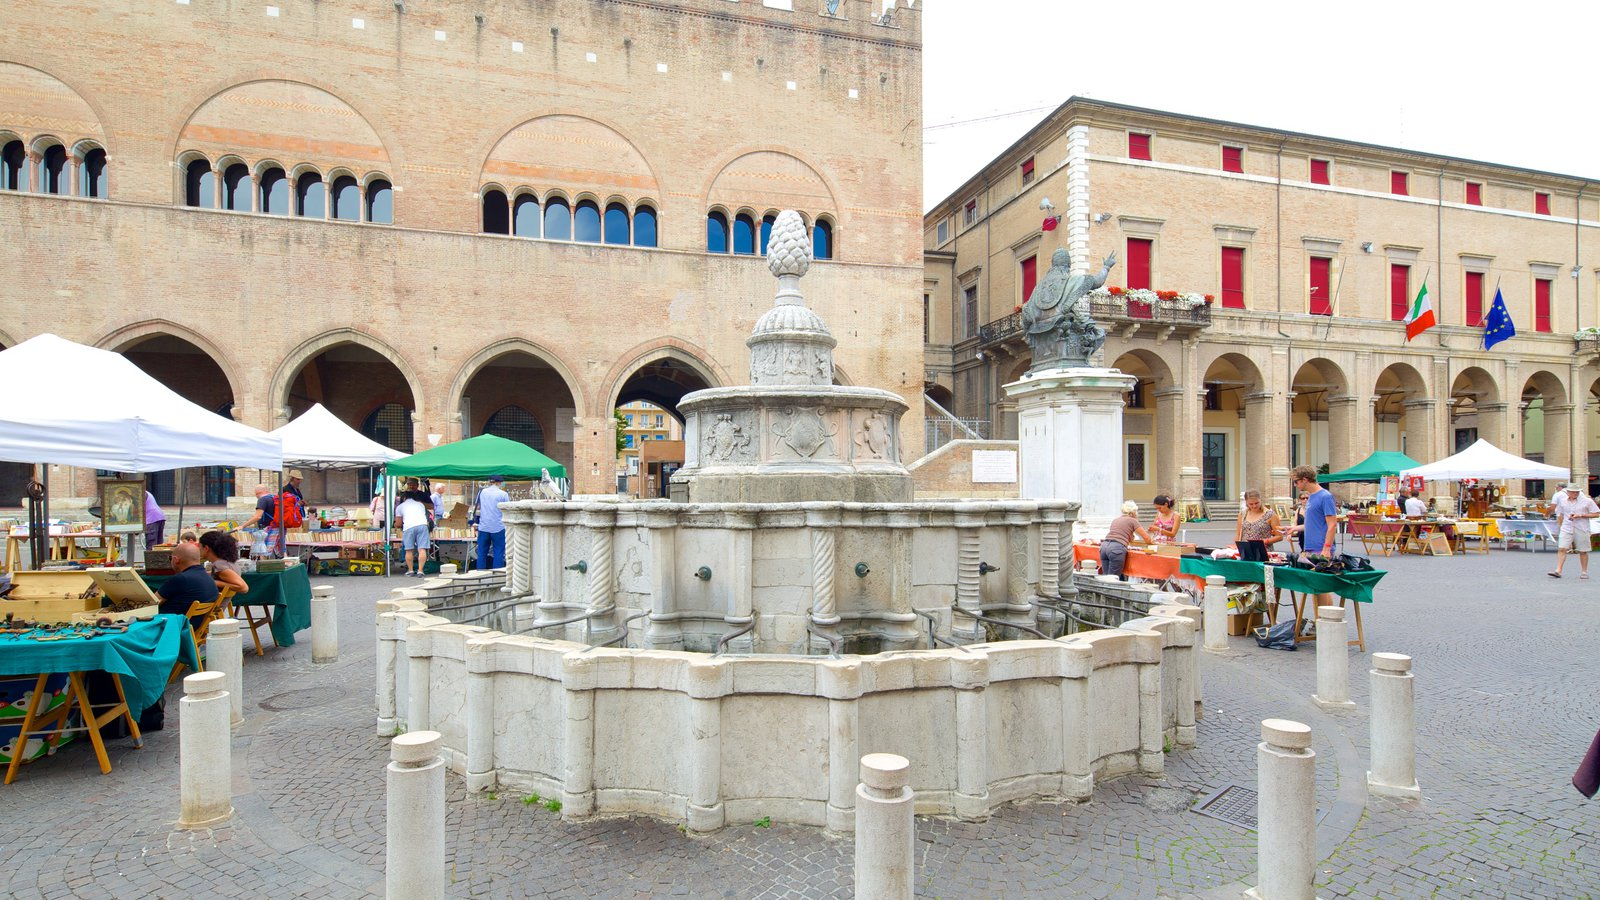 Piazza Cavour showing street scenes and a fountain